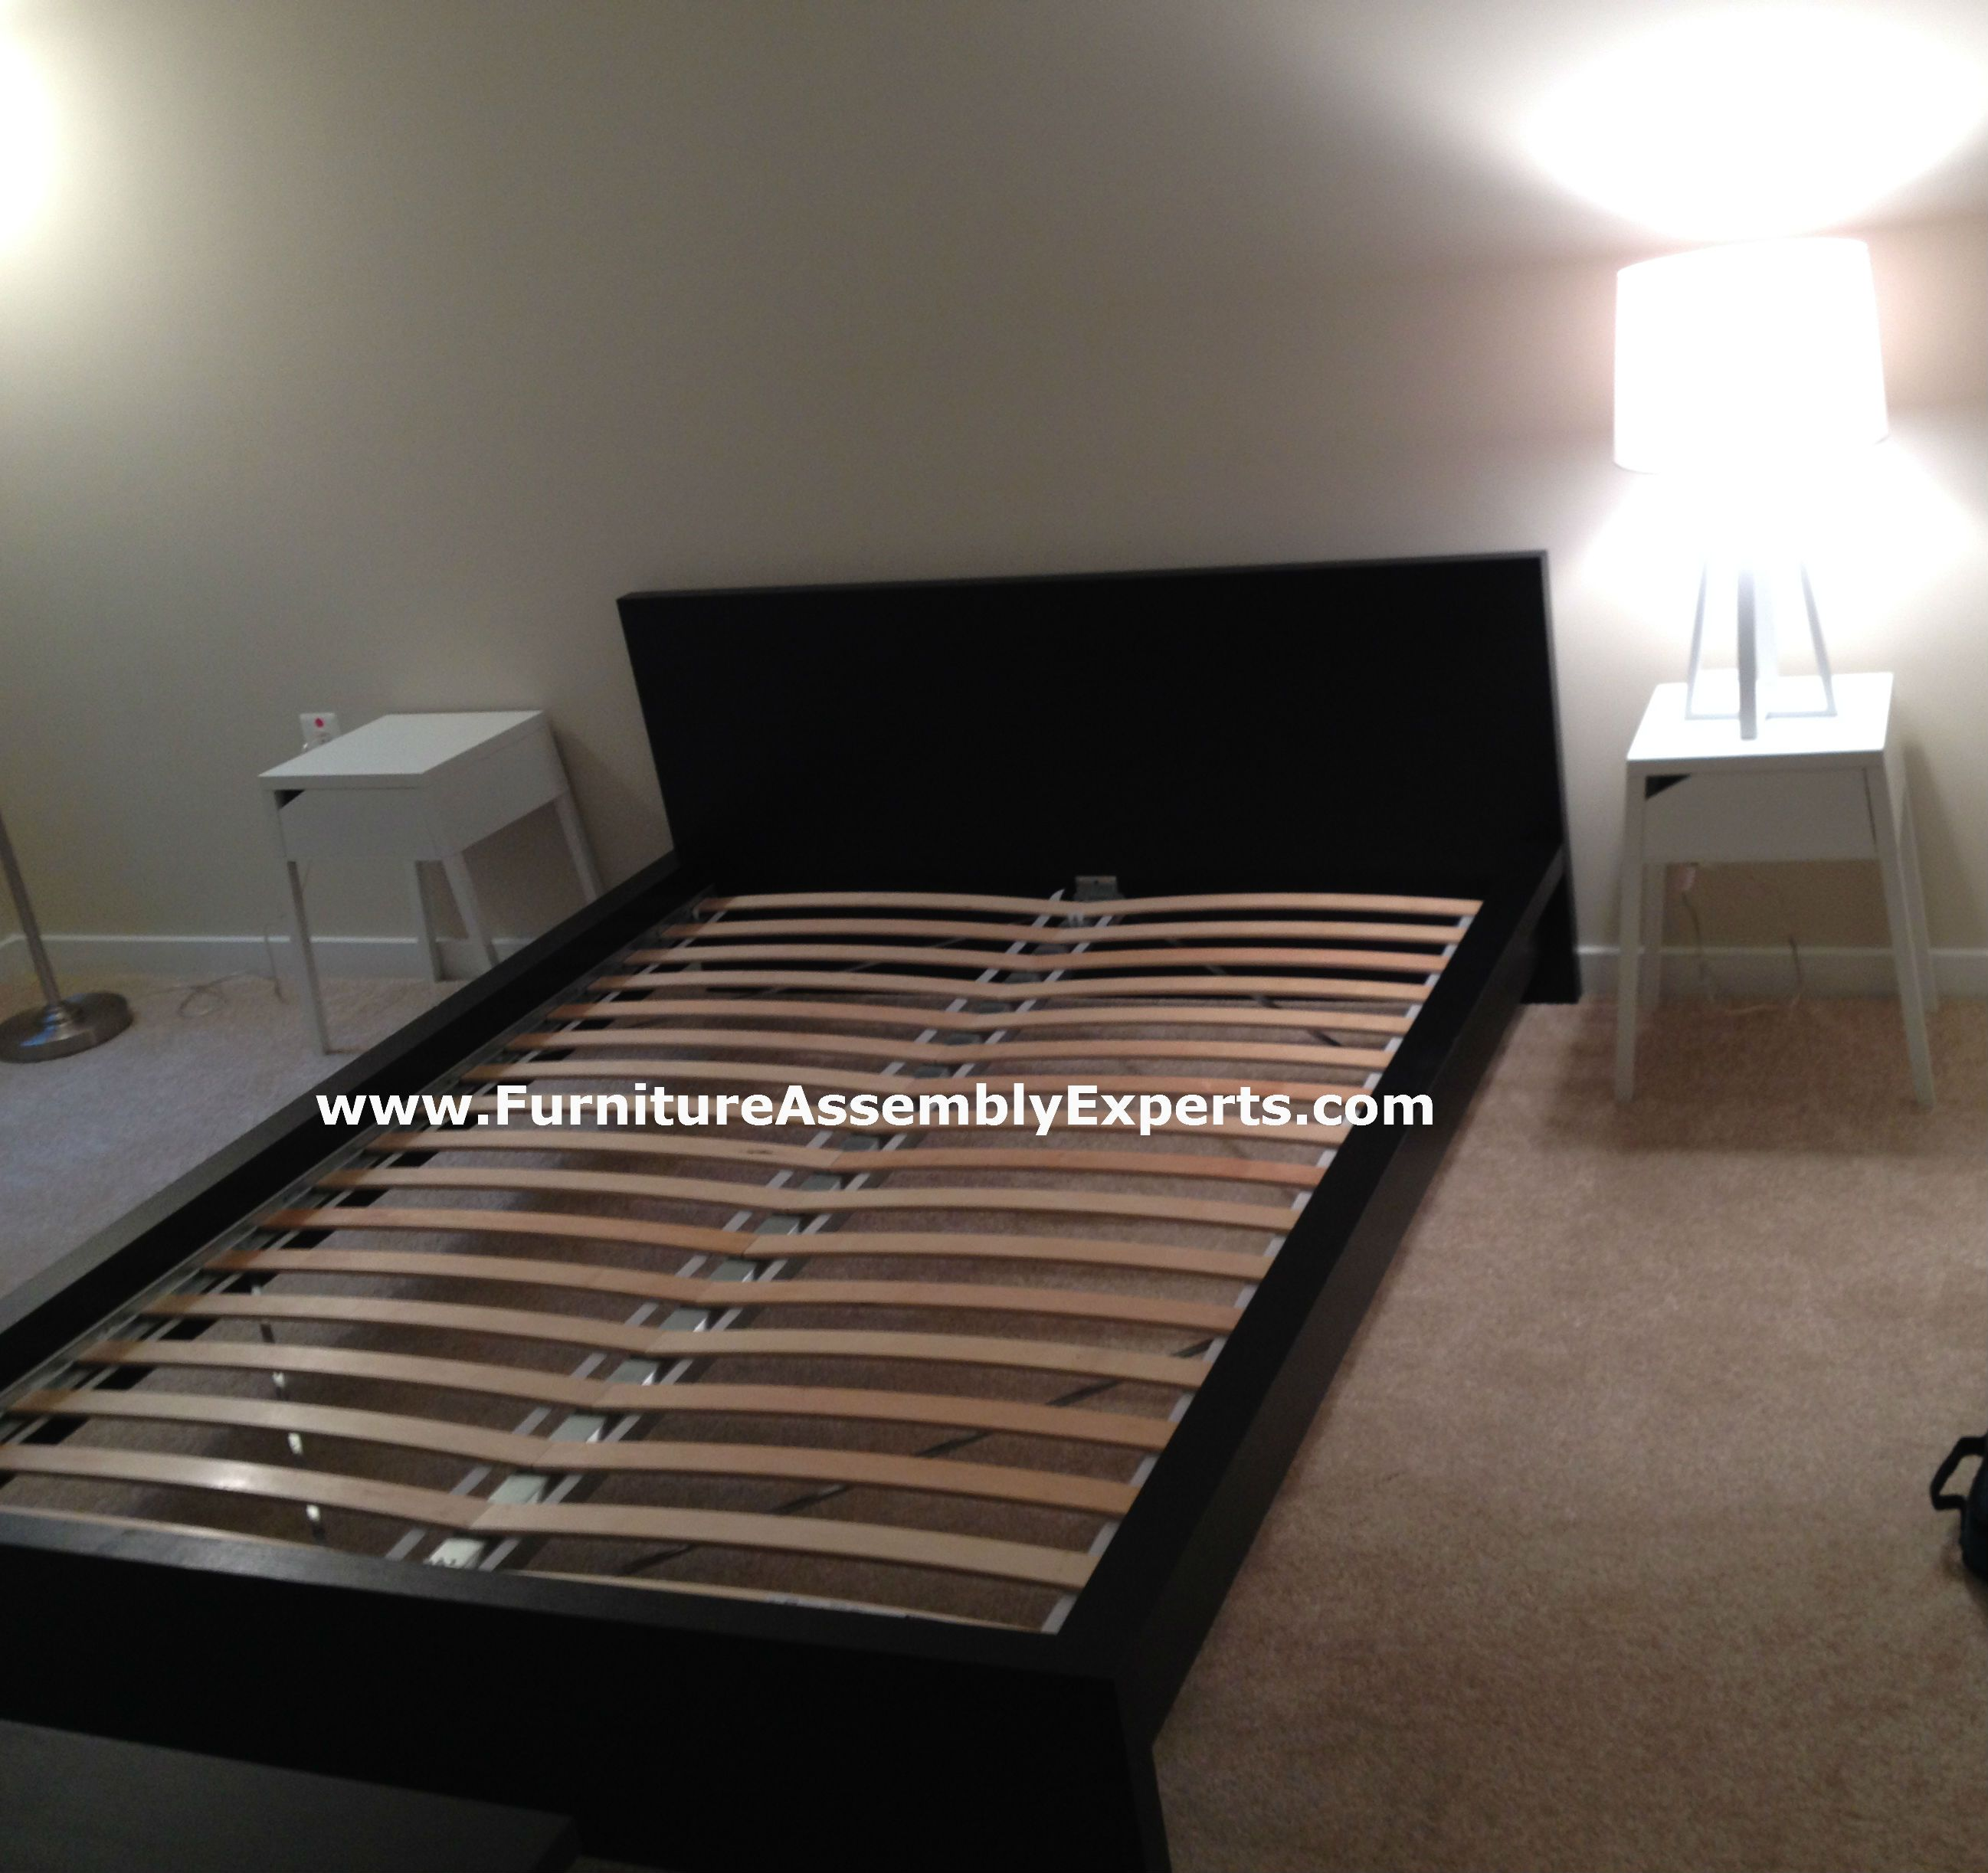 Ikea Malm Bed Assembled In Great Falls Va By Furniture Assembly